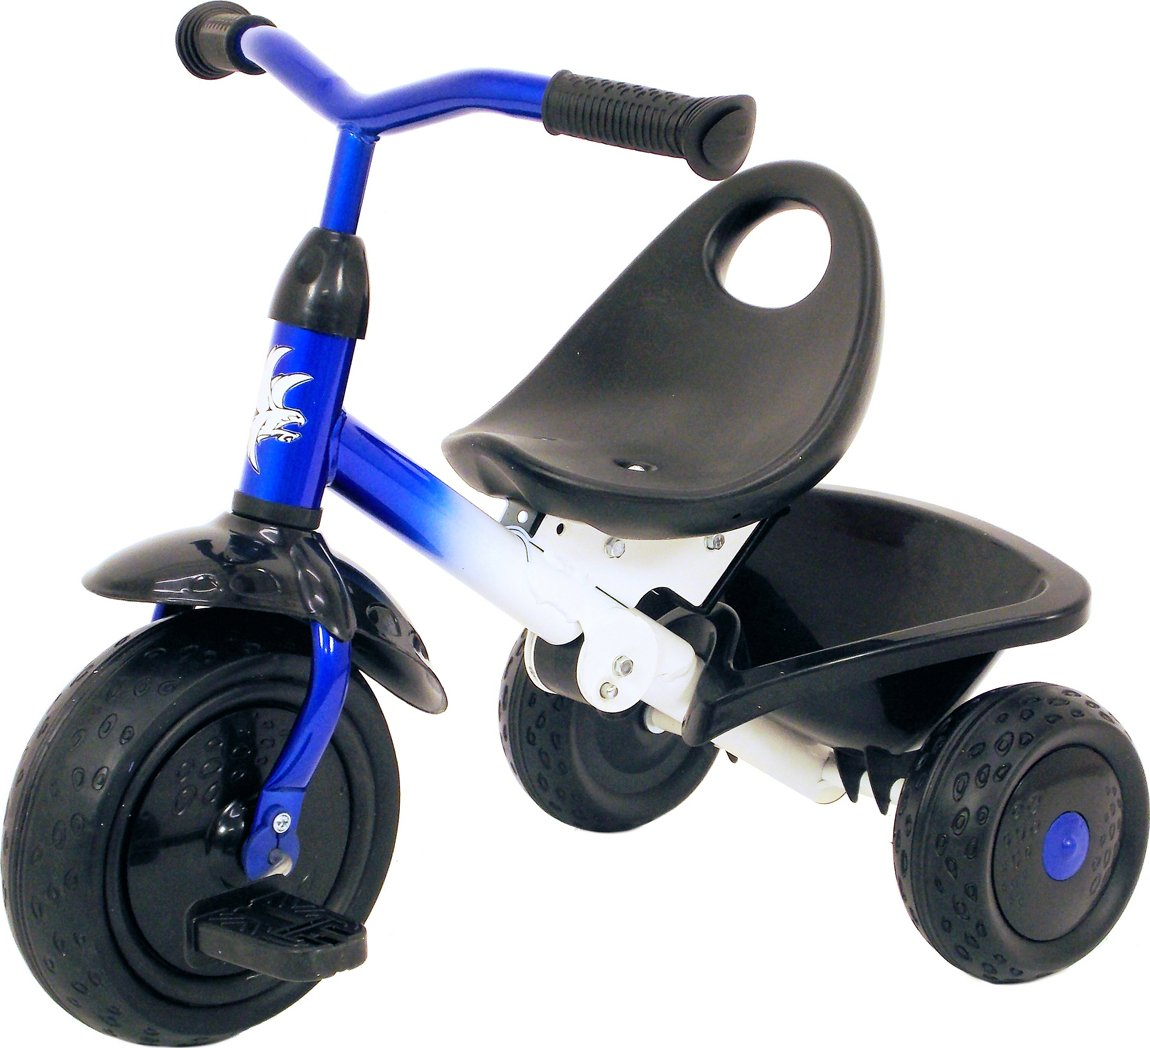 Kettler Kiddi-o by Fold 'n Ride Trike with Adjustable Seat: Falcon, Youth Ages 1.5+